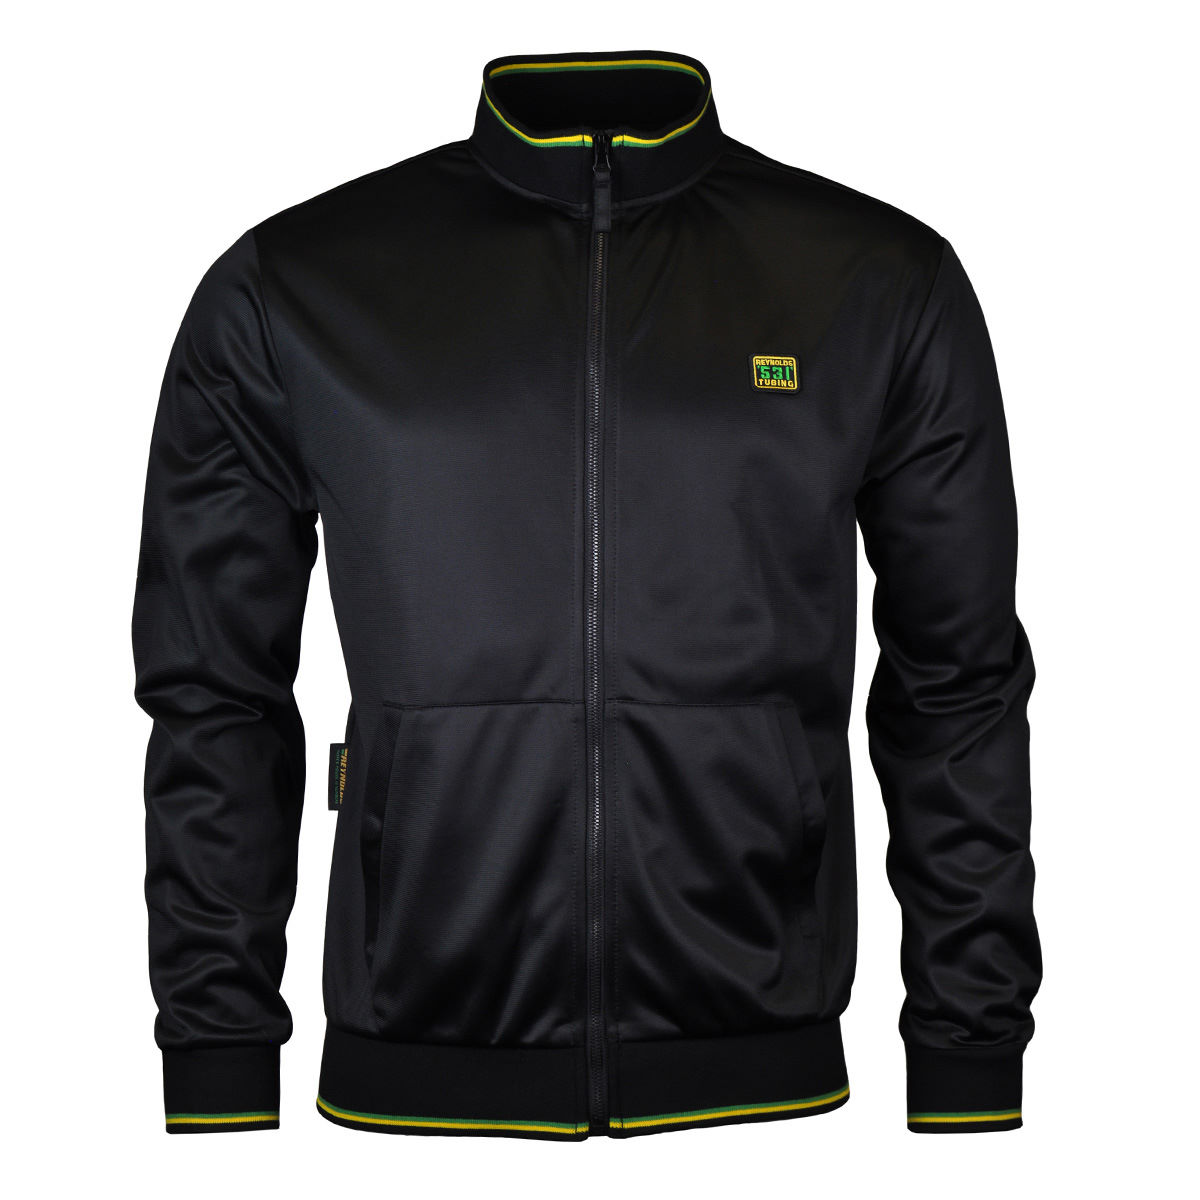 Reynolds Clothing 531 Tipped Full Zip Track Top - Chaquetas informales